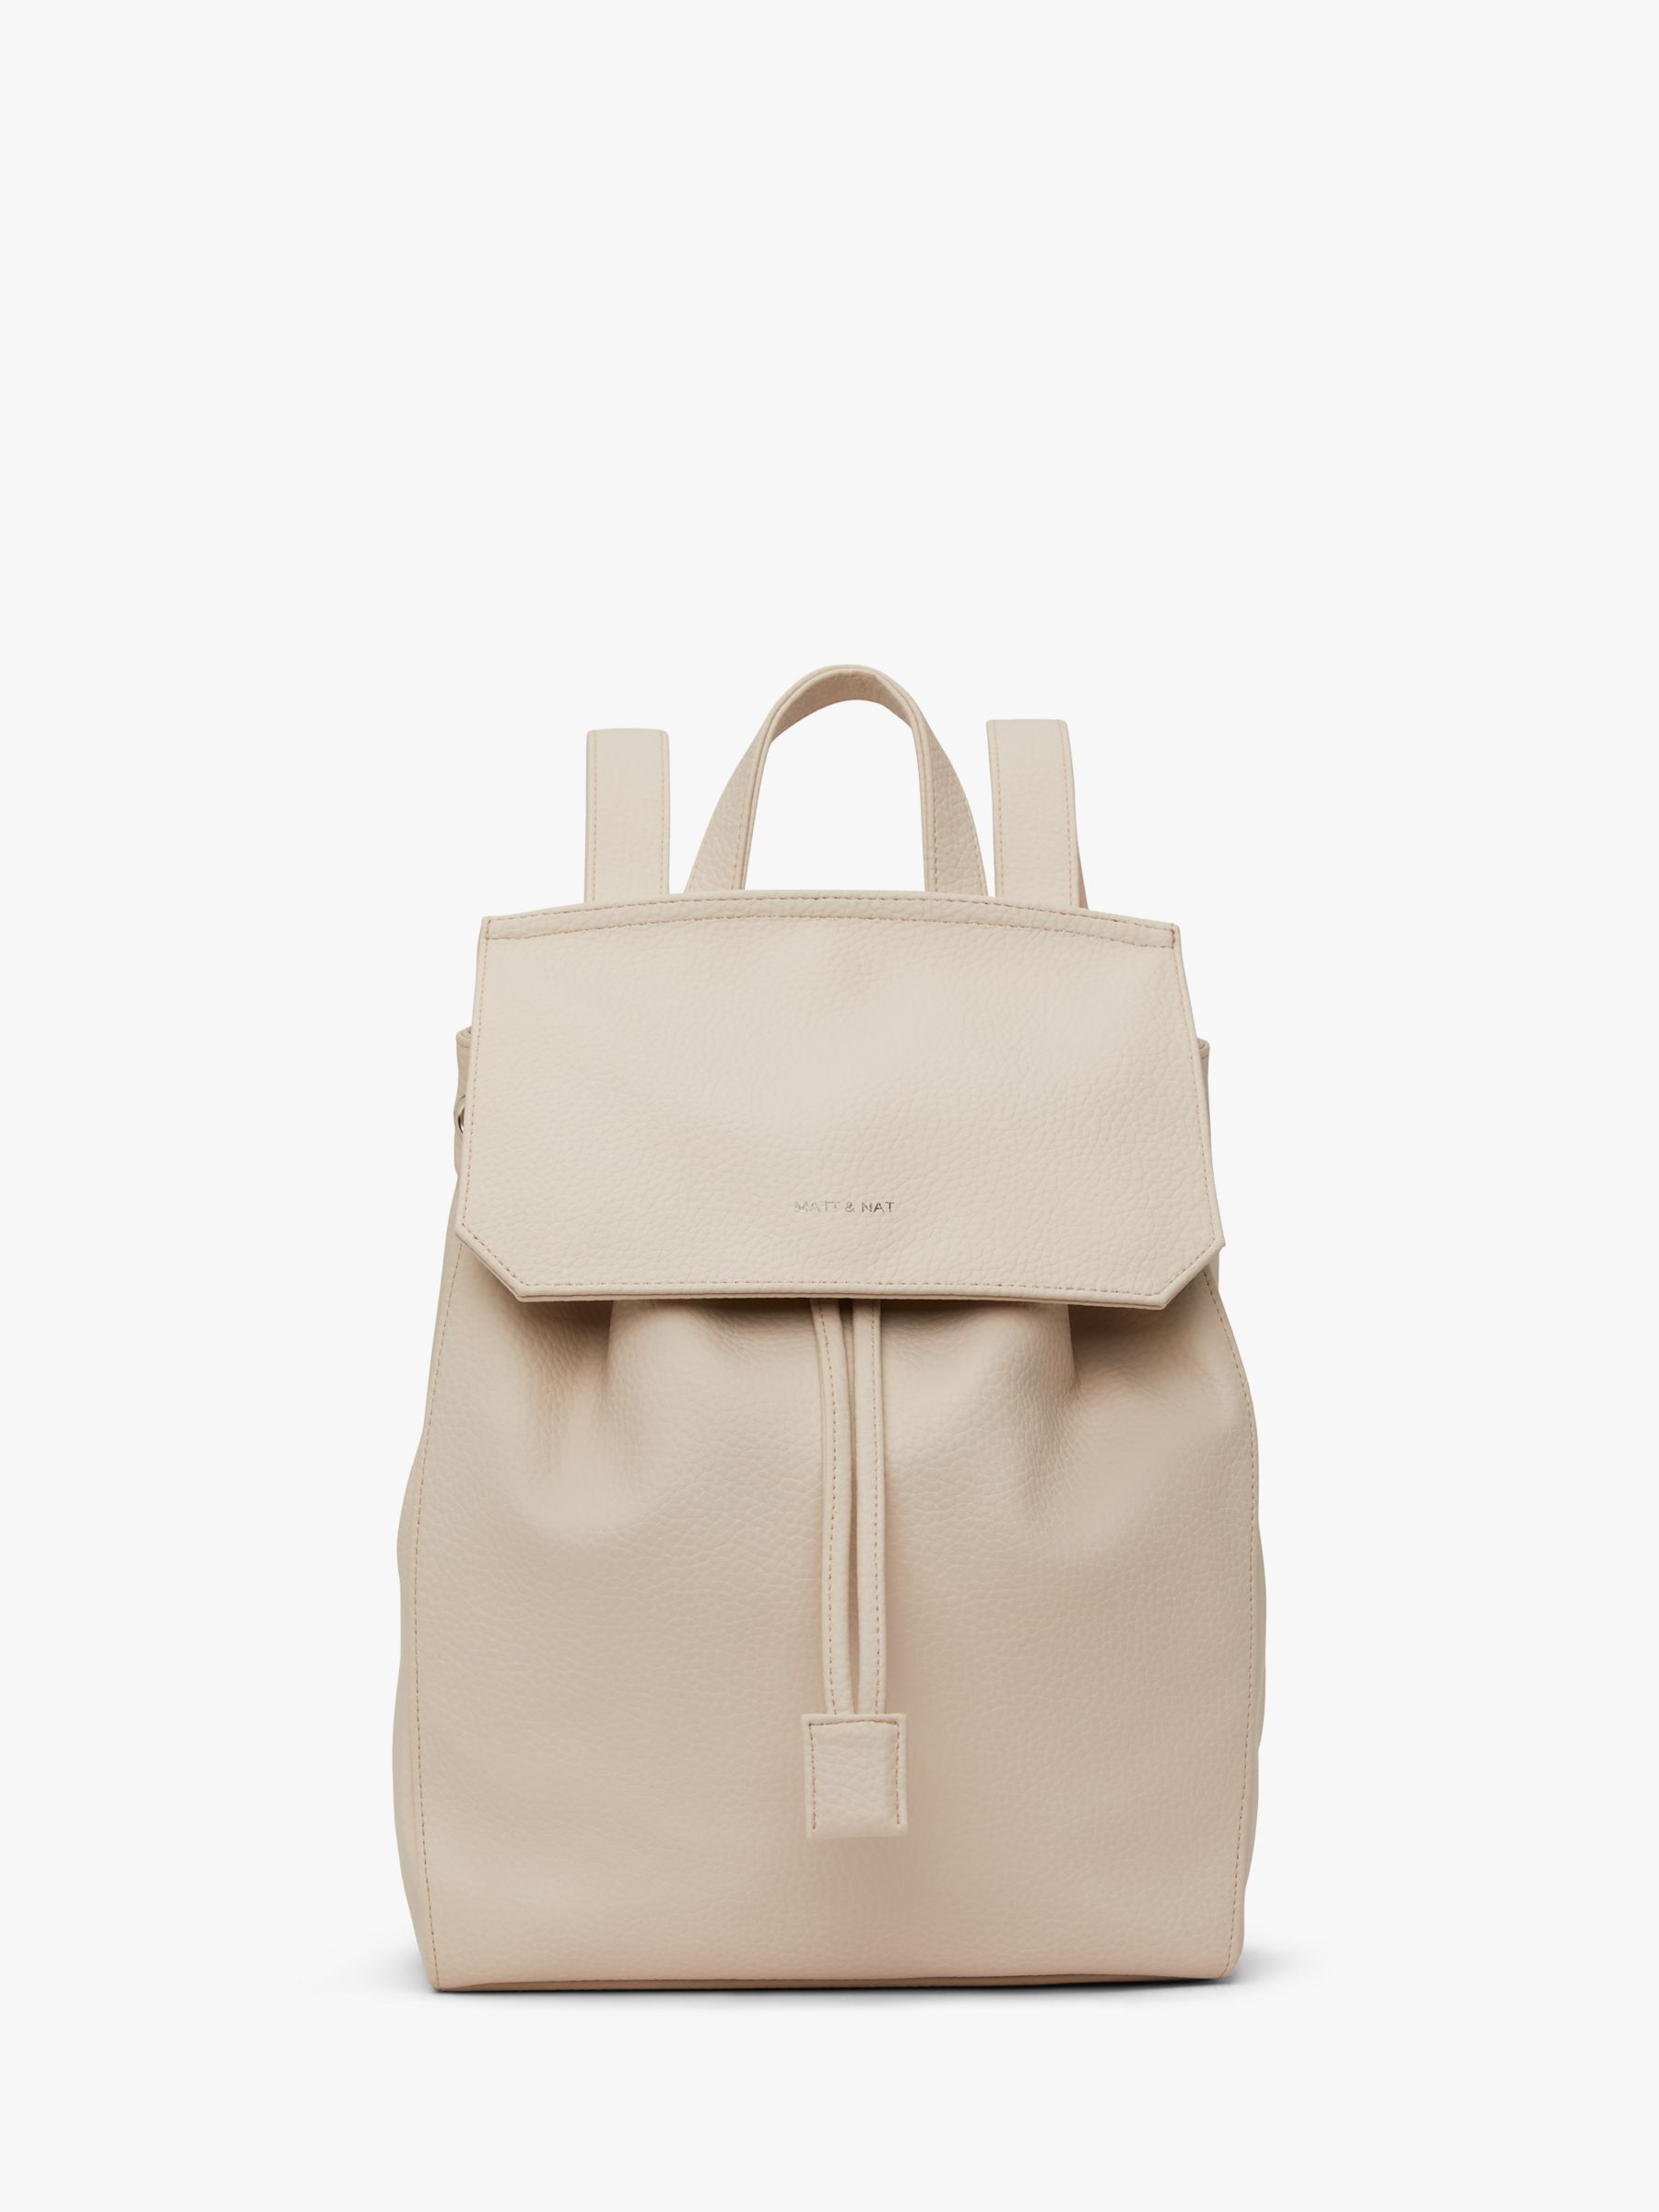 Matt & Nat Recycled Purity Collection Mumbai Vegan Backpack